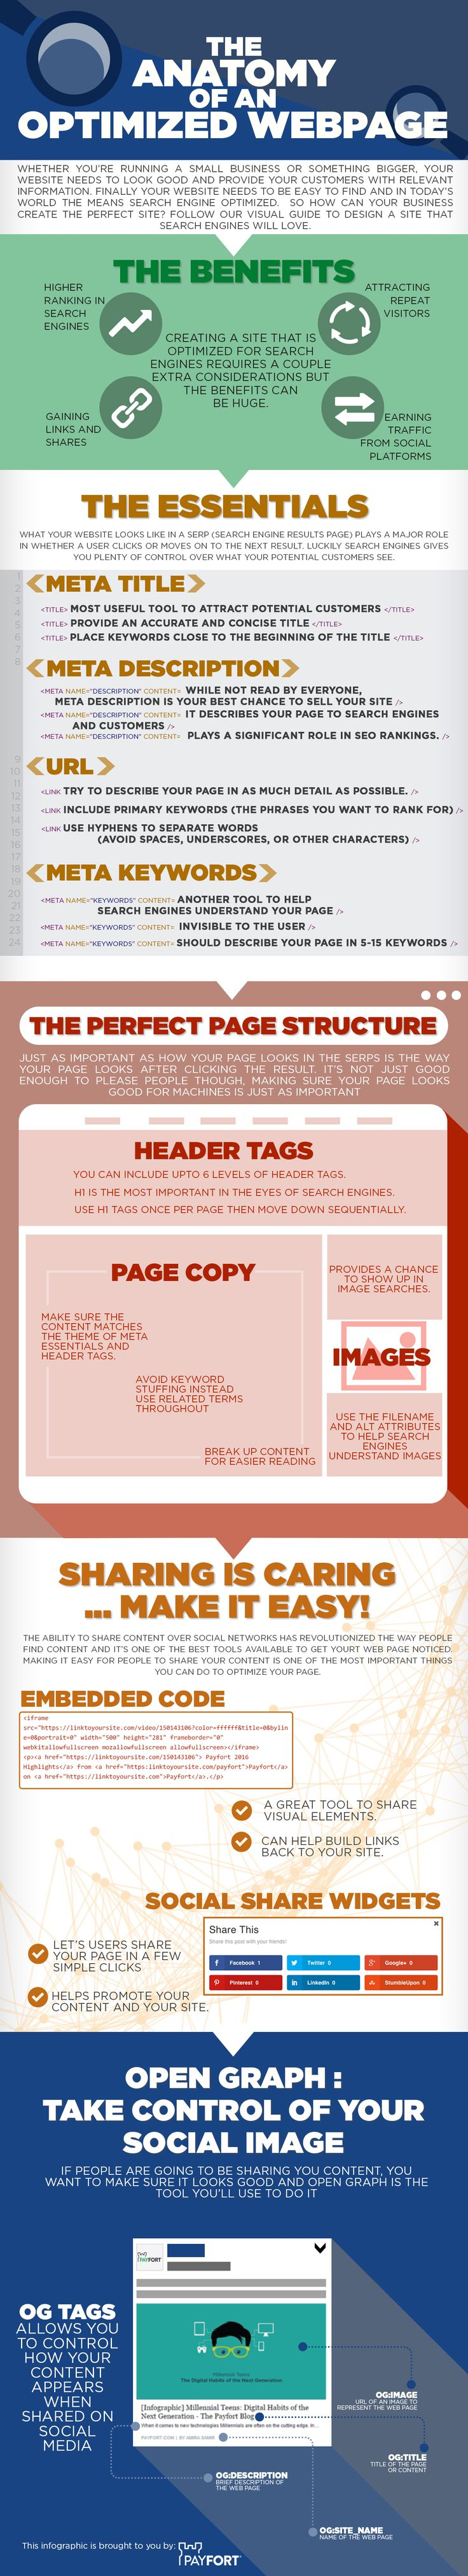 The Anatomy Of An Optimized Webpage